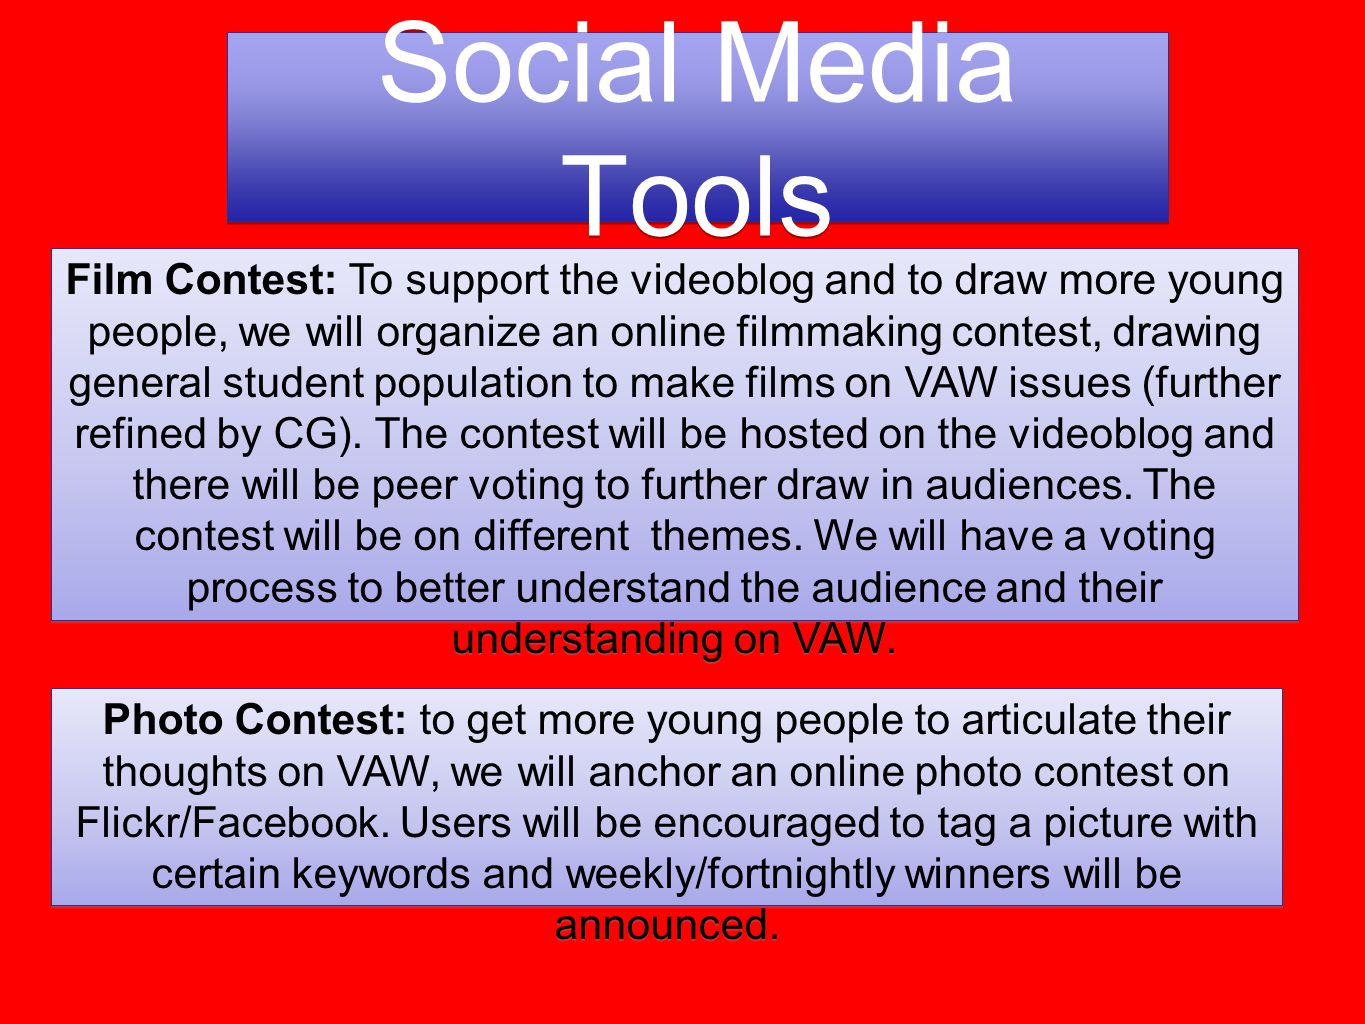 Social Media Tools Film Contest: To support the videoblog and to draw more young people, we will organize an online filmmaking contest, drawing general student population to make films on VAW issues (further refined by CG).